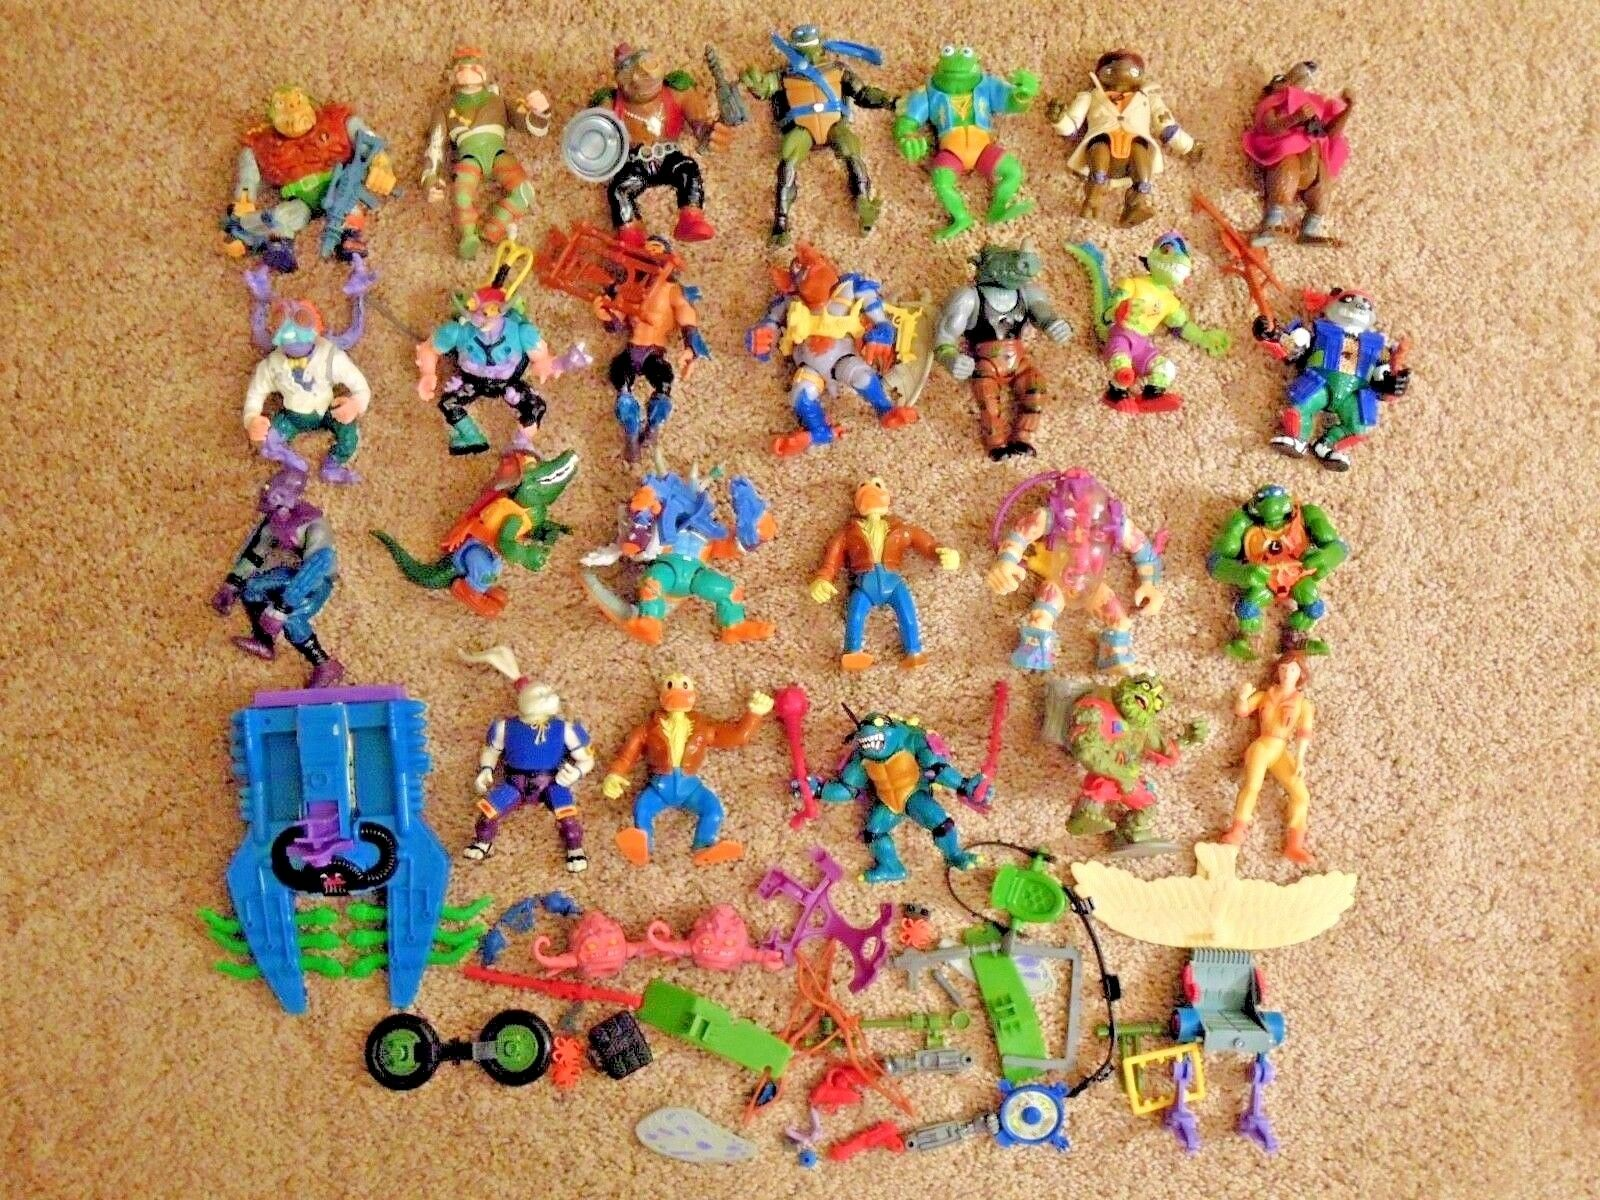 25 25 Original 1990s Ninja Turtle Characters Action Figures with Weapons & Vehicle